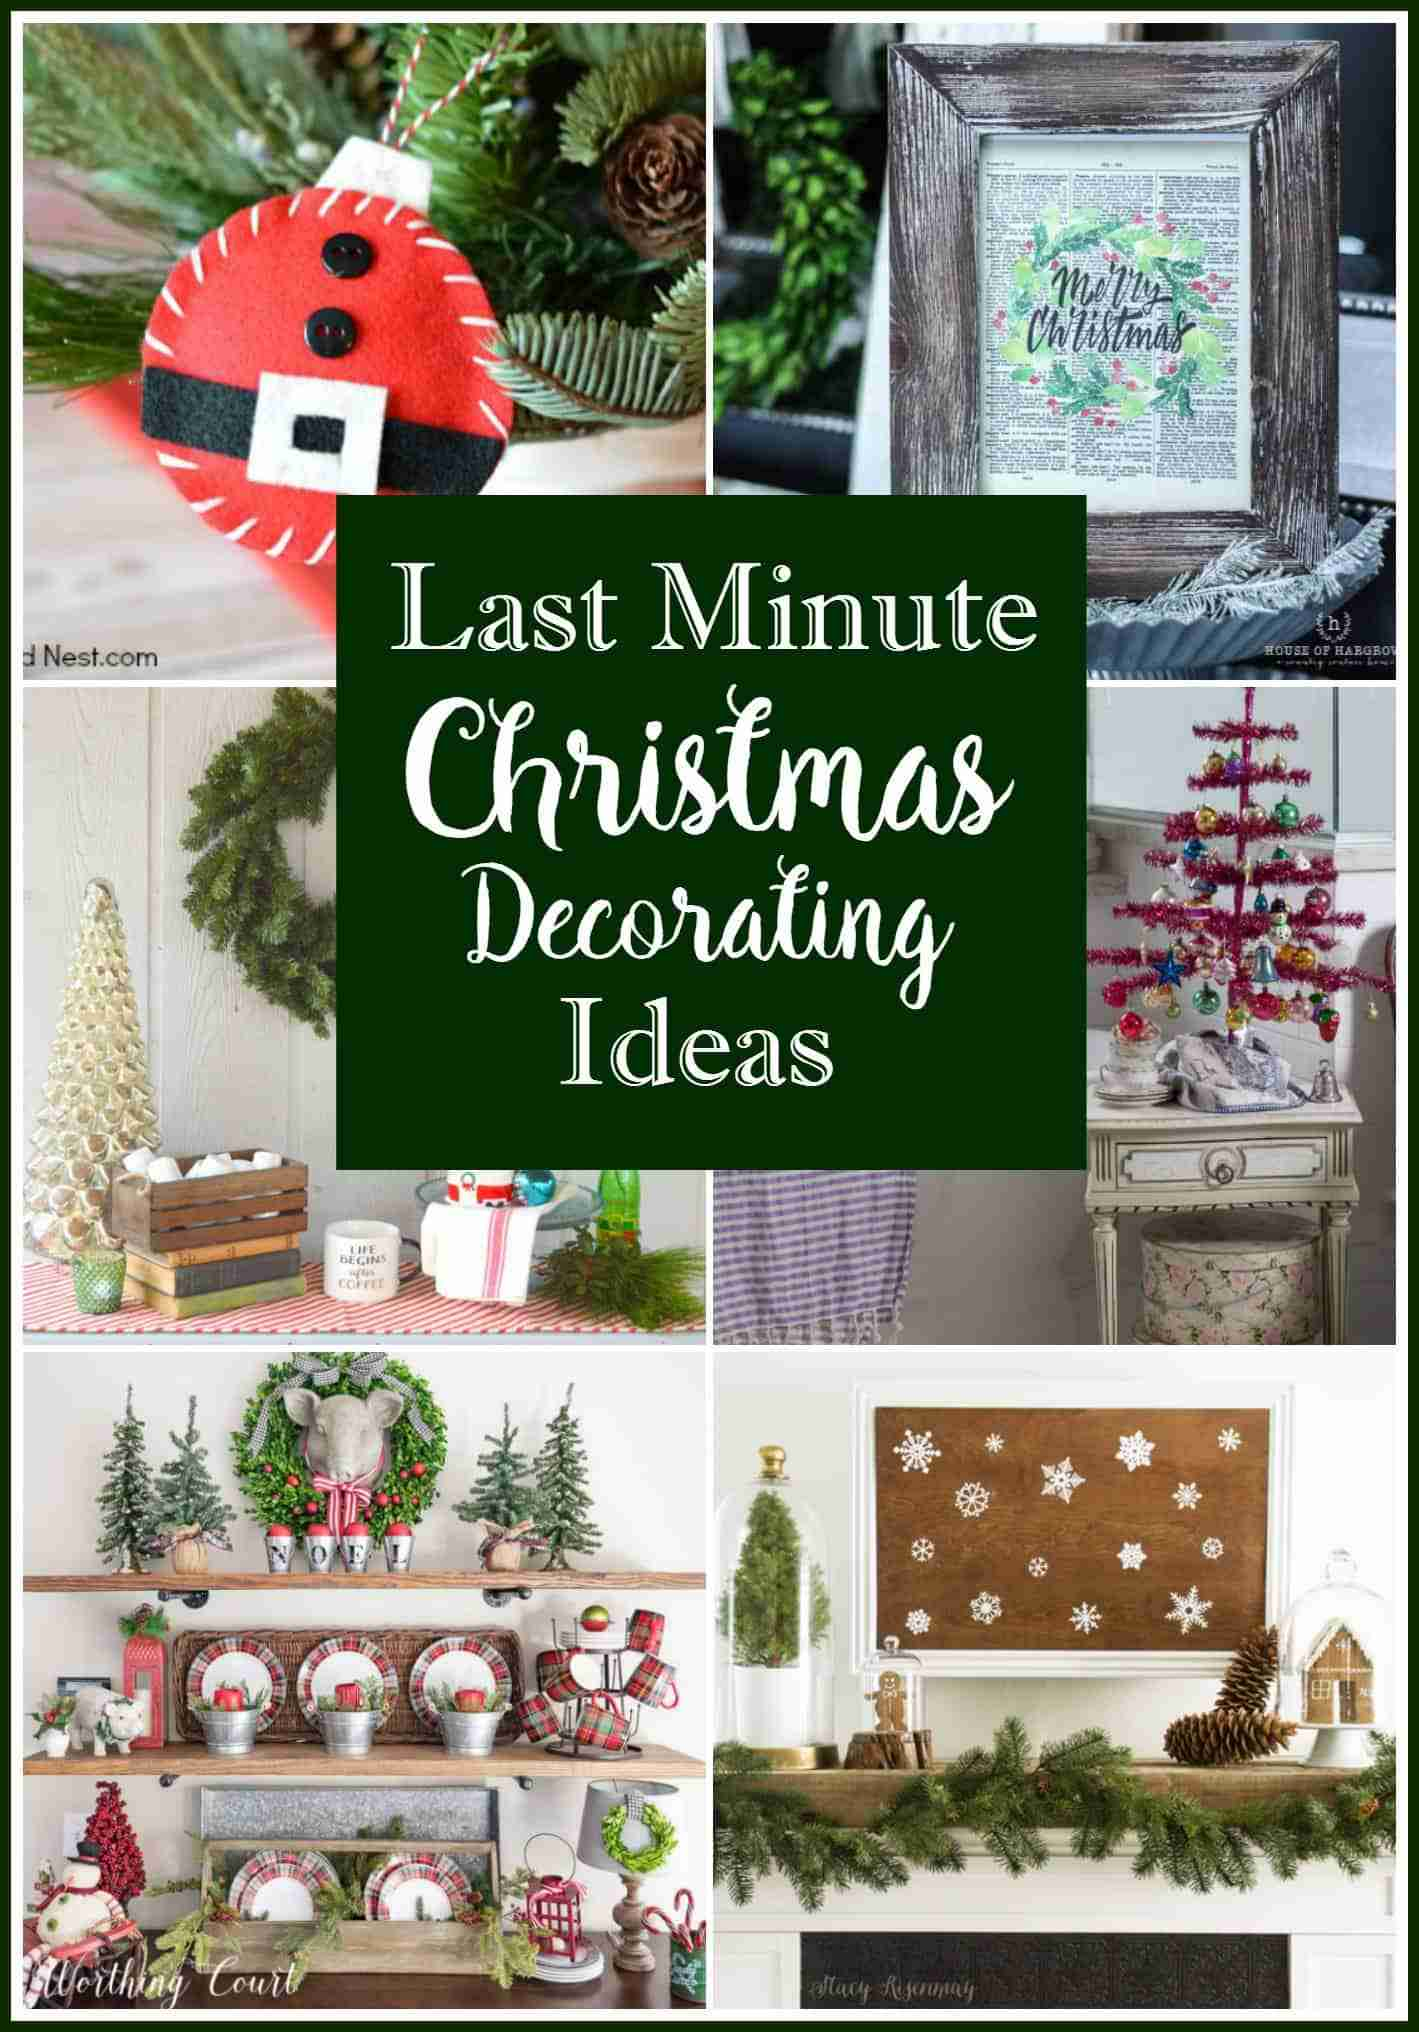 Last Minute Christmas Decorating Ideas from Daily Dish Magazine